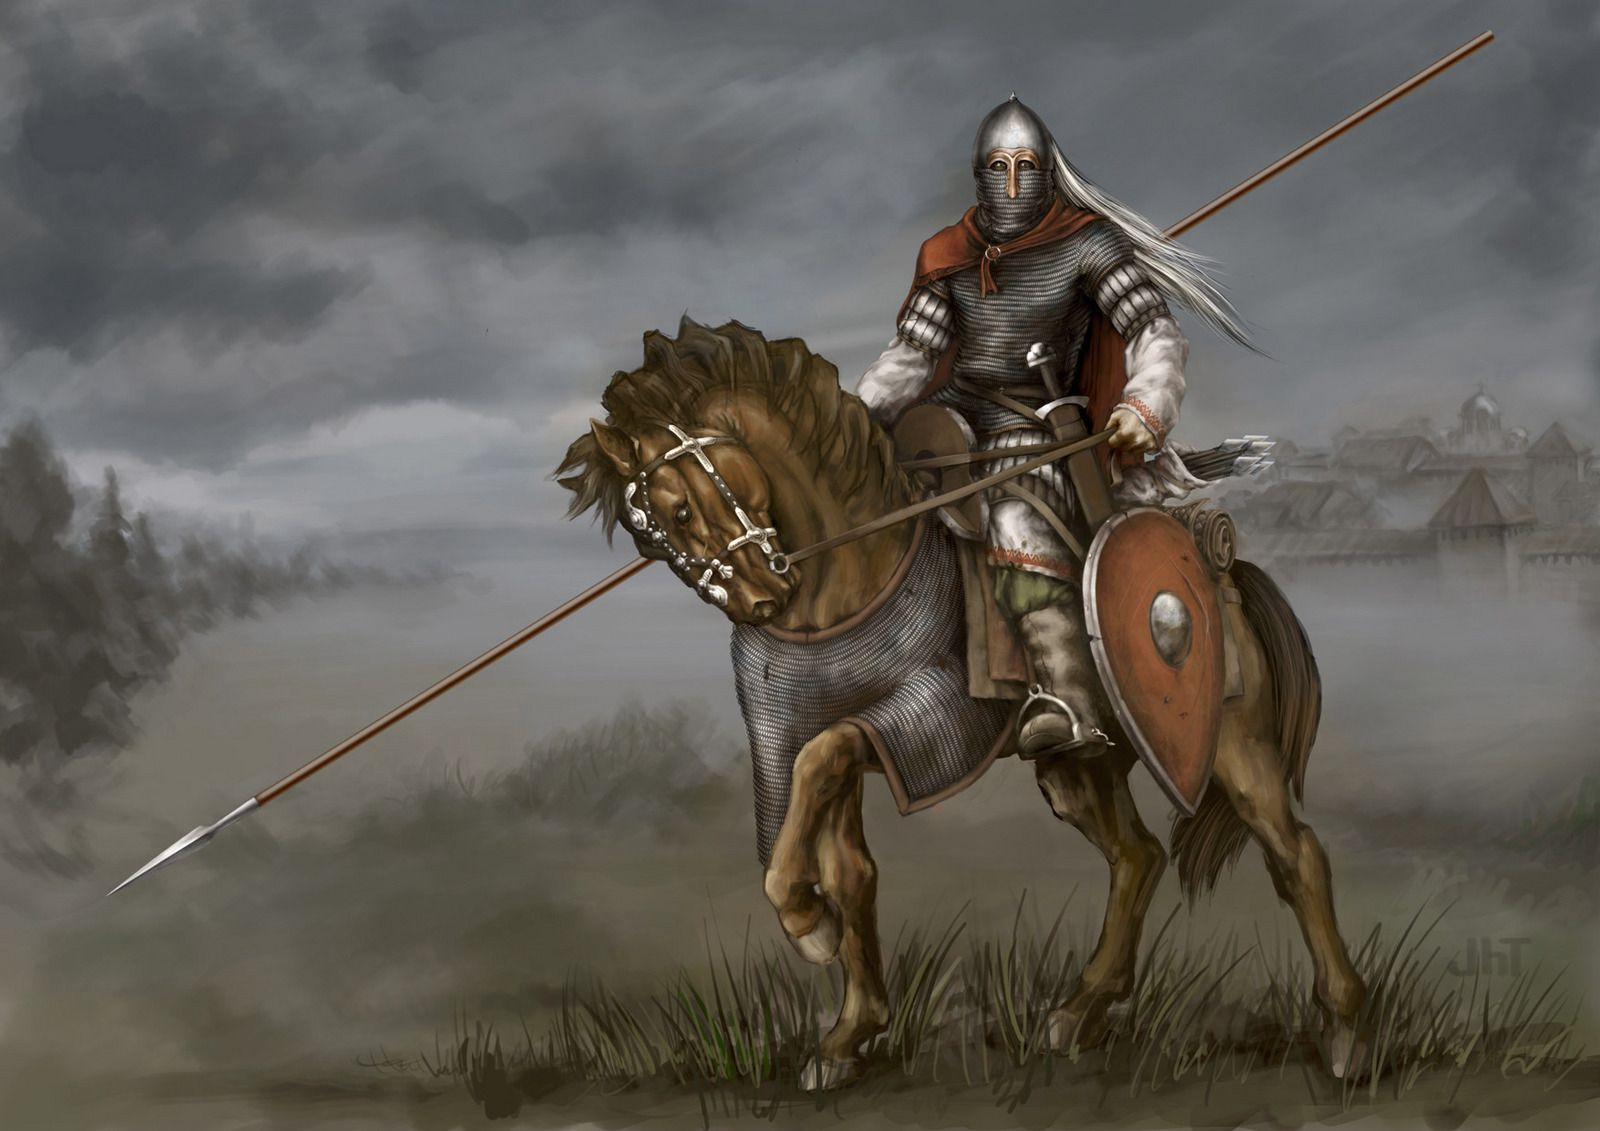 Cavalry Medieval Knight Knight On Horse Medieval Fantasy